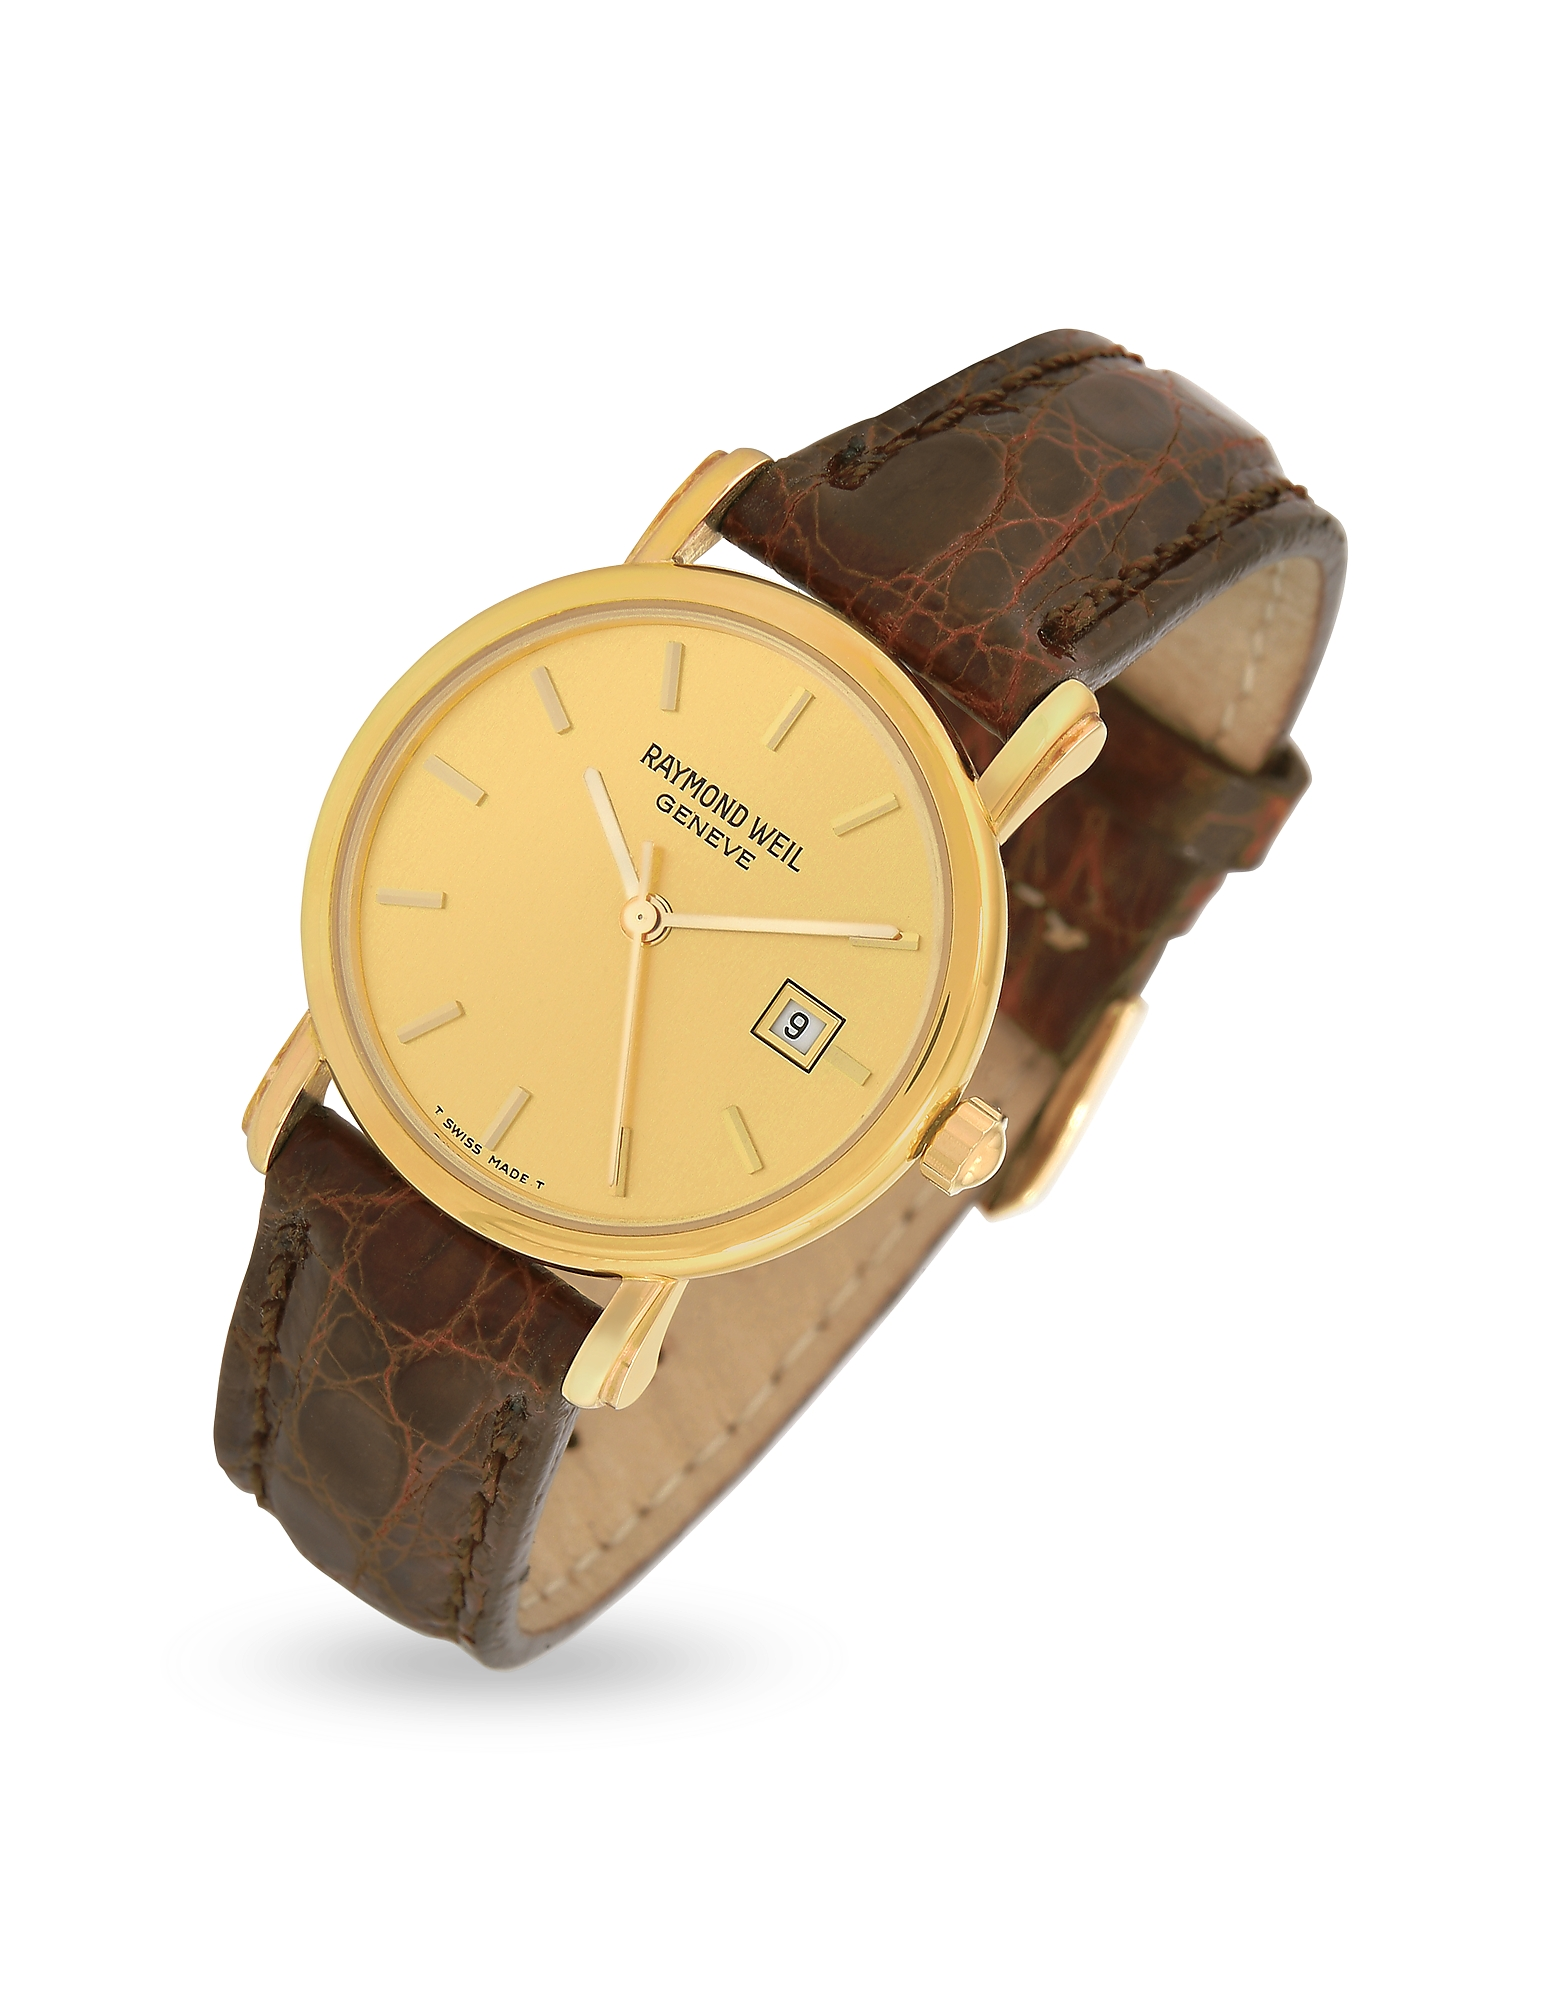 Raymond Weil Women's Watches, Brown Croco-Stamped Leather Strap 18K Gold Date Dress Watch